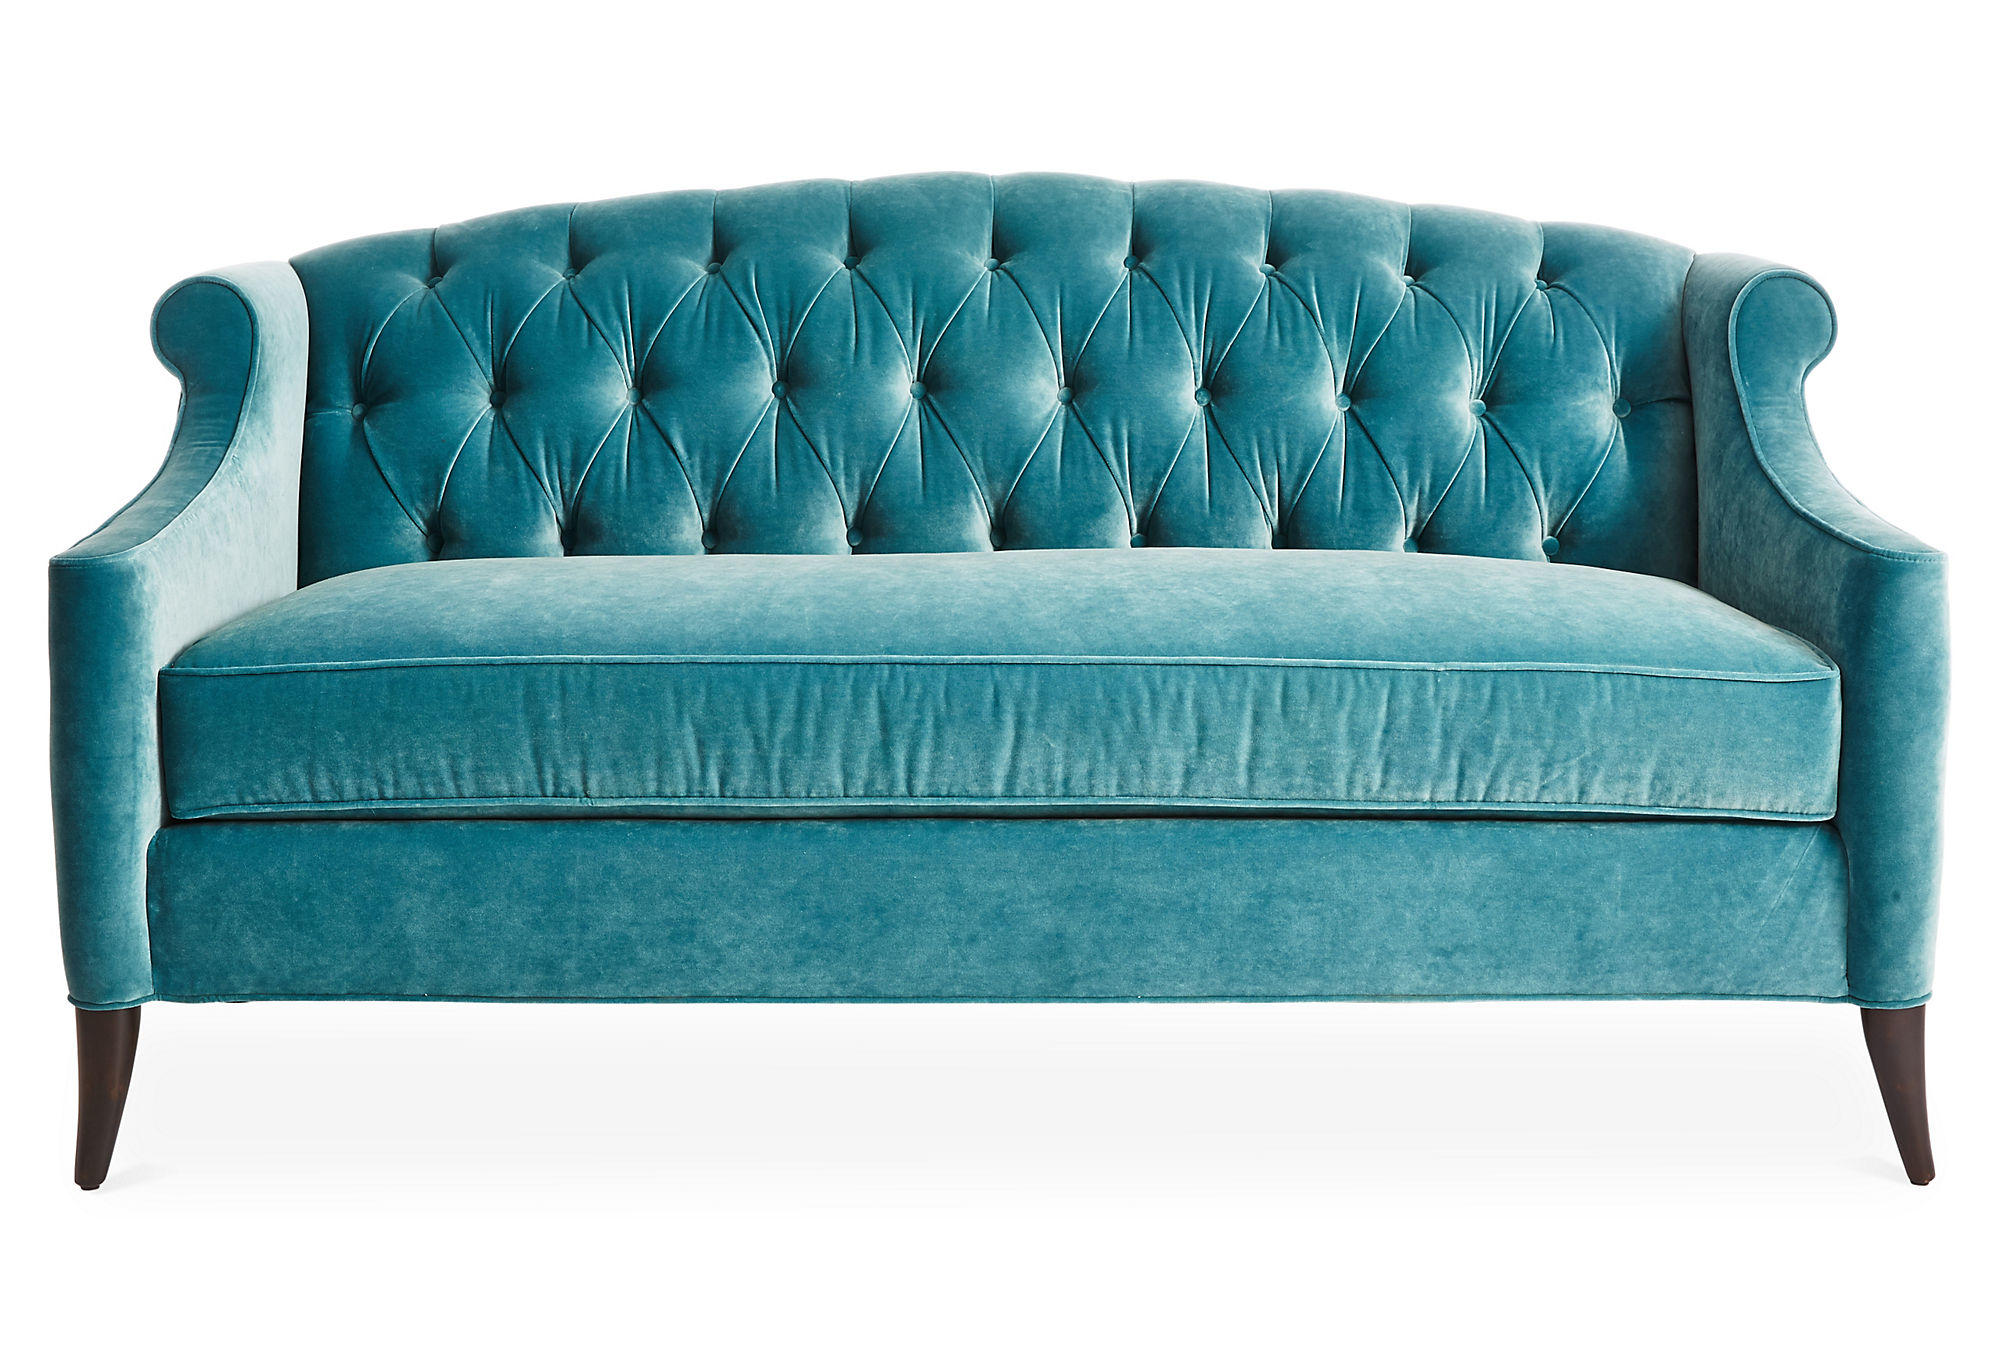 tufted sofa velvet casters cups coco 72 quot sea glass from one kings lane